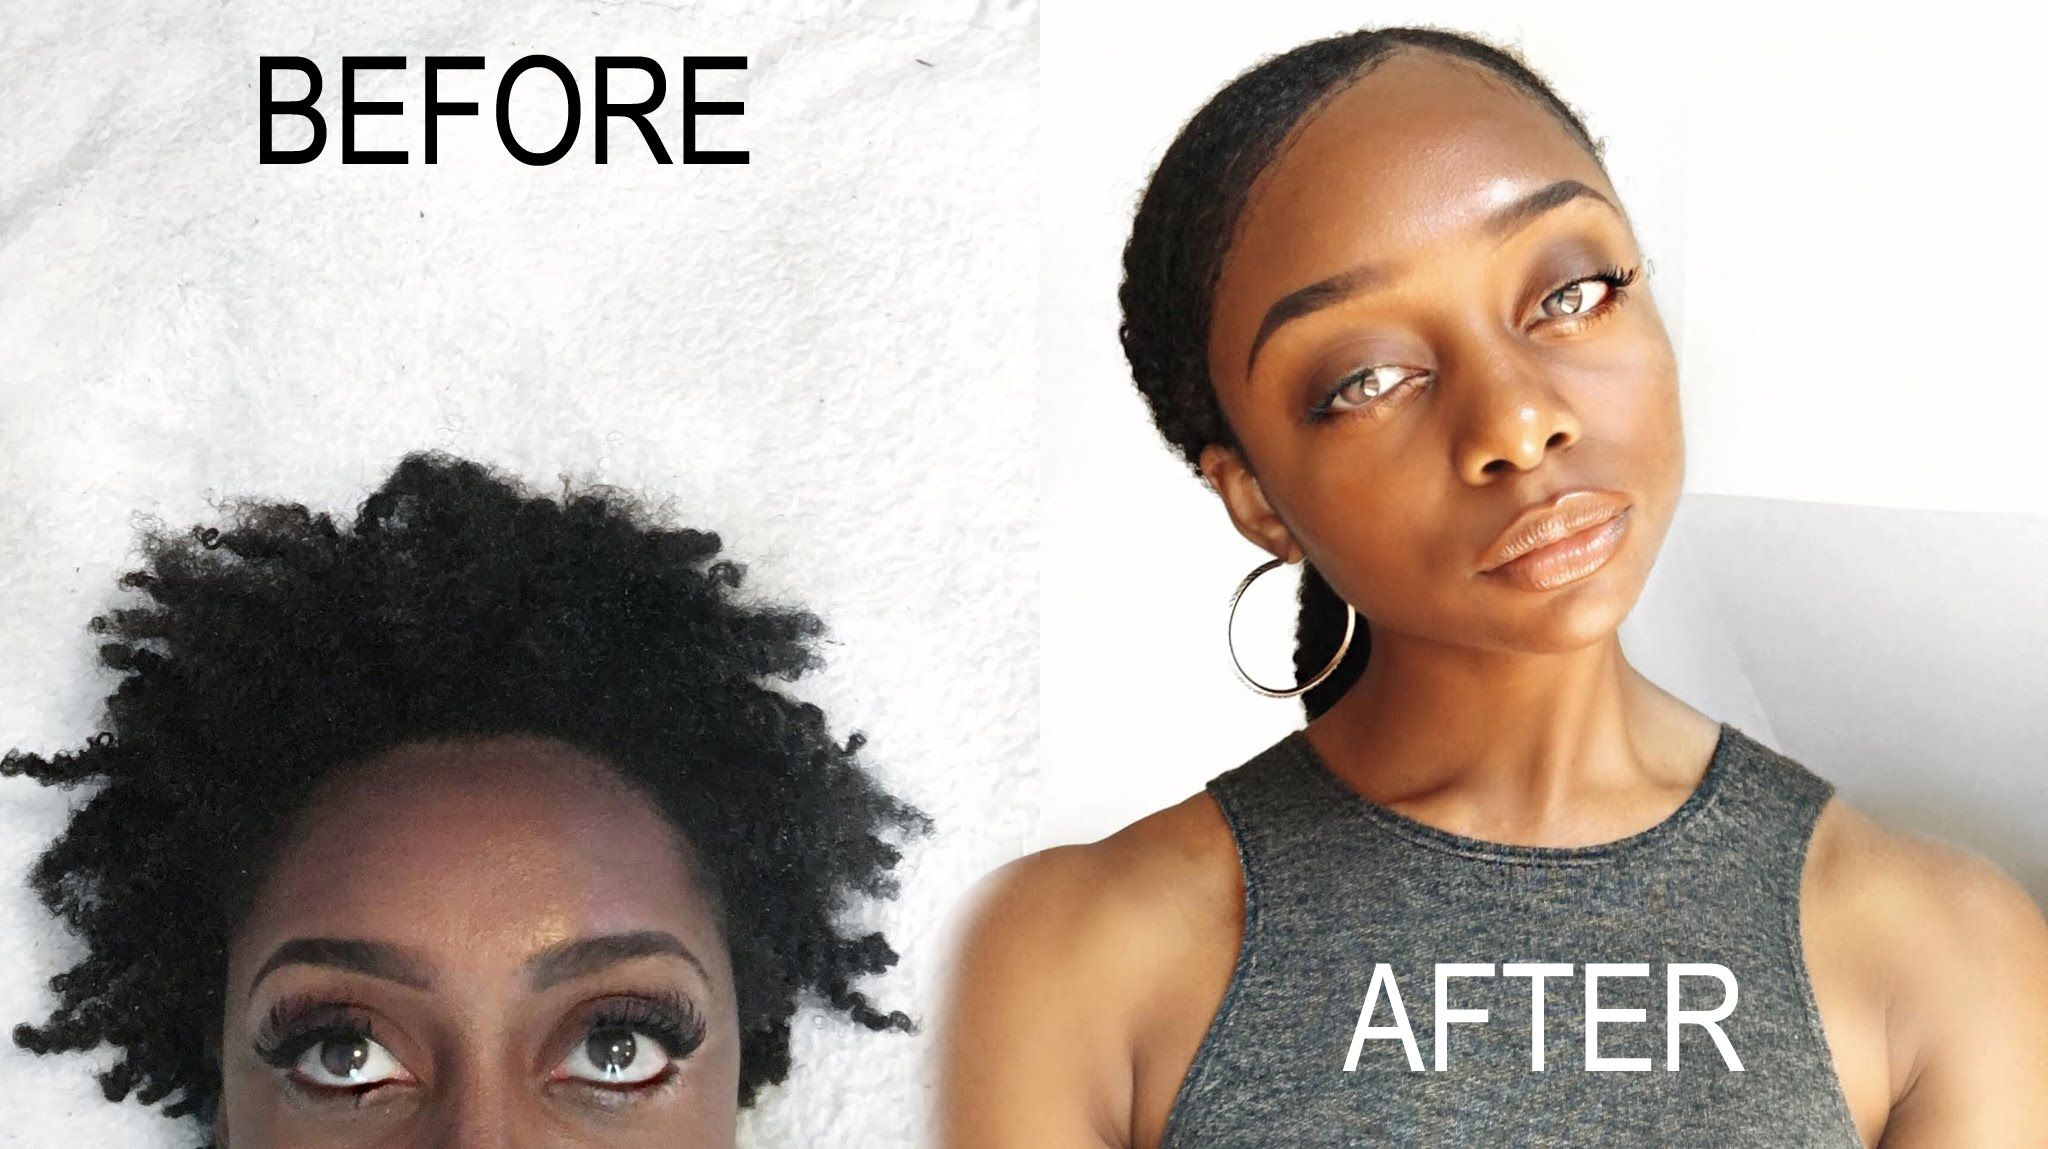 how to: sleek low pony tail on short 4b/4c natural hair